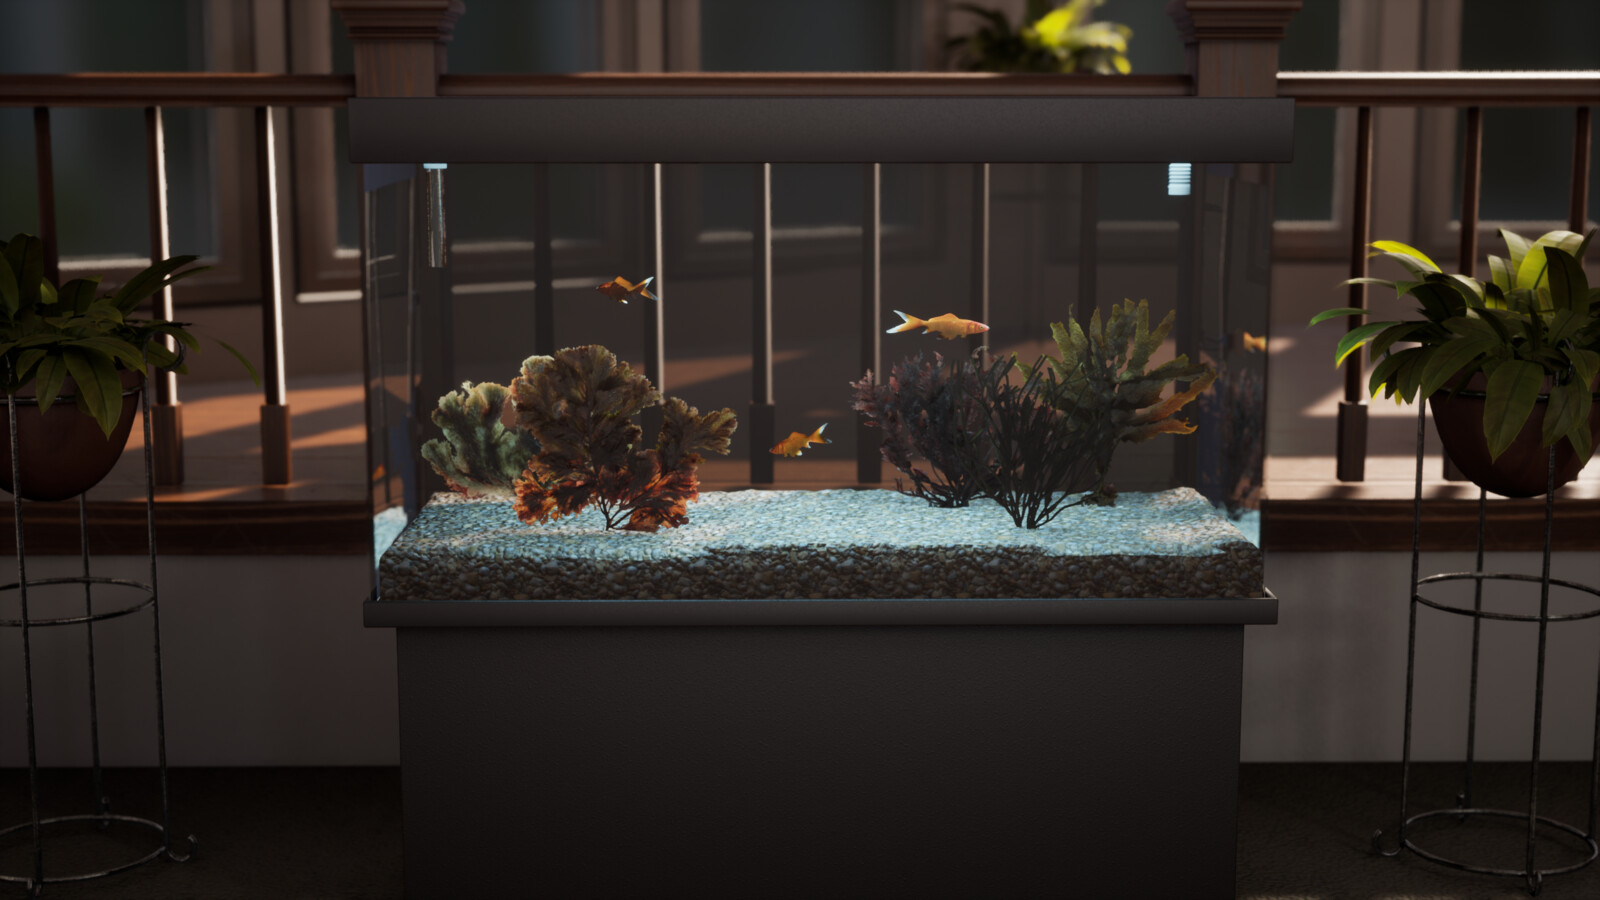 Render of the fish tank up close.  A short 4-5 second video with animations running will open the scene.